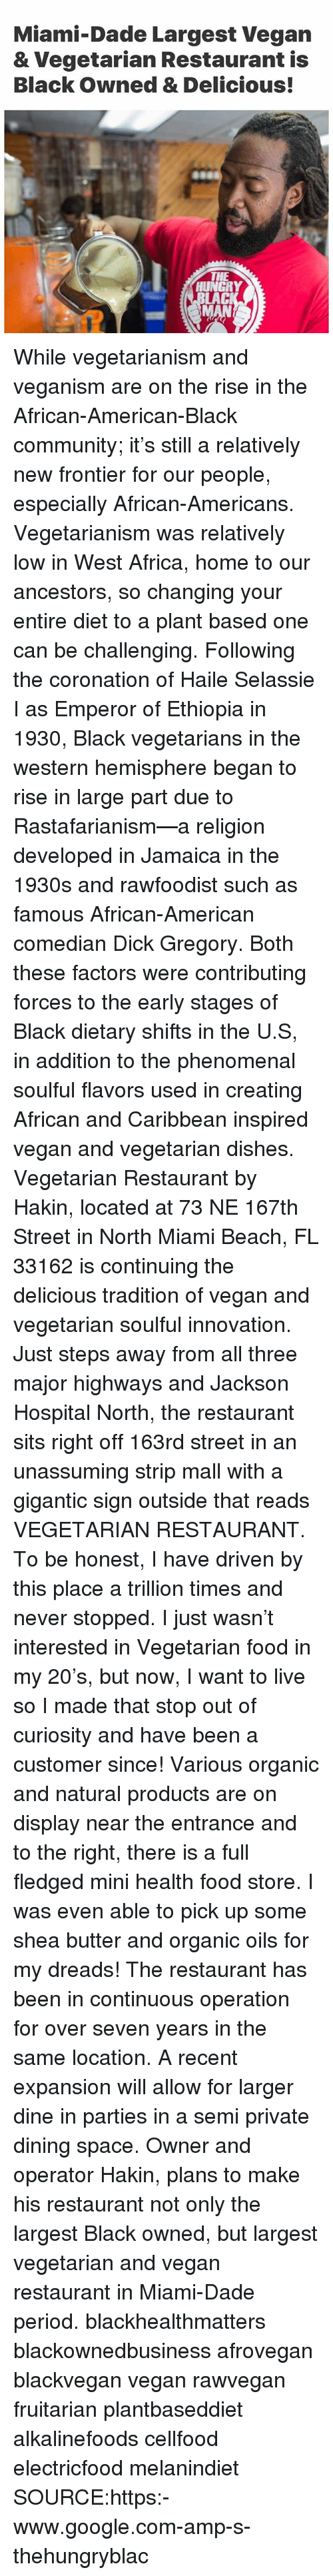 Africa, Community, and Dreads: Miami-Dade Largest Vegan  & Vegetarian Restaurant is  Black Owned & Delicious!  HUNGRY  LAC While vegetarianism and veganism are on the rise in the African-American-Black community; it's still a relatively new frontier for our people, especially African-Americans. Vegetarianism was relatively low in West Africa, home to our ancestors, so changing your entire diet to a plant based one can be challenging. Following the coronation of Haile Selassie I as Emperor of Ethiopia in 1930, Black vegetarians in the western hemisphere began to rise in large part due to Rastafarianism—a religion developed in Jamaica in the 1930s and rawfoodist such as famous African-American comedian Dick Gregory. Both these factors were contributing forces to the early stages of Black dietary shifts in the U.S, in addition to the phenomenal soulful flavors used in creating African and Caribbean inspired vegan and vegetarian dishes. Vegetarian Restaurant by Hakin, located at 73 NE 167th Street in North Miami Beach, FL 33162 is continuing the delicious tradition of vegan and vegetarian soulful innovation. Just steps away from all three major highways and Jackson Hospital North, the restaurant sits right off 163rd street in an unassuming strip mall with a gigantic sign outside that reads VEGETARIAN RESTAURANT. To be honest, I have driven by this place a trillion times and never stopped. I just wasn't interested in Vegetarian food in my 20's, but now, I want to live so I made that stop out of curiosity and have been a customer since! Various organic and natural products are on display near the entrance and to the right, there is a full fledged mini health food store. I was even able to pick up some shea butter and organic oils for my dreads! The restaurant has been in continuous operation for over seven years in the same location. A recent expansion will allow for larger dine in parties in a semi private dining space. Owner and operator Hakin, plans to make his restaurant not only the largest Black owned, but largest vegetarian and vegan restaurant in Miami-Dade period. blackhealthmatters blackownedbusiness afrovegan blackvegan vegan rawvegan fruitarian plantbaseddiet alkalinefoods cellfood electricfood melanindiet SOURCE:https:-www.google.com-amp-s-thehungryblac